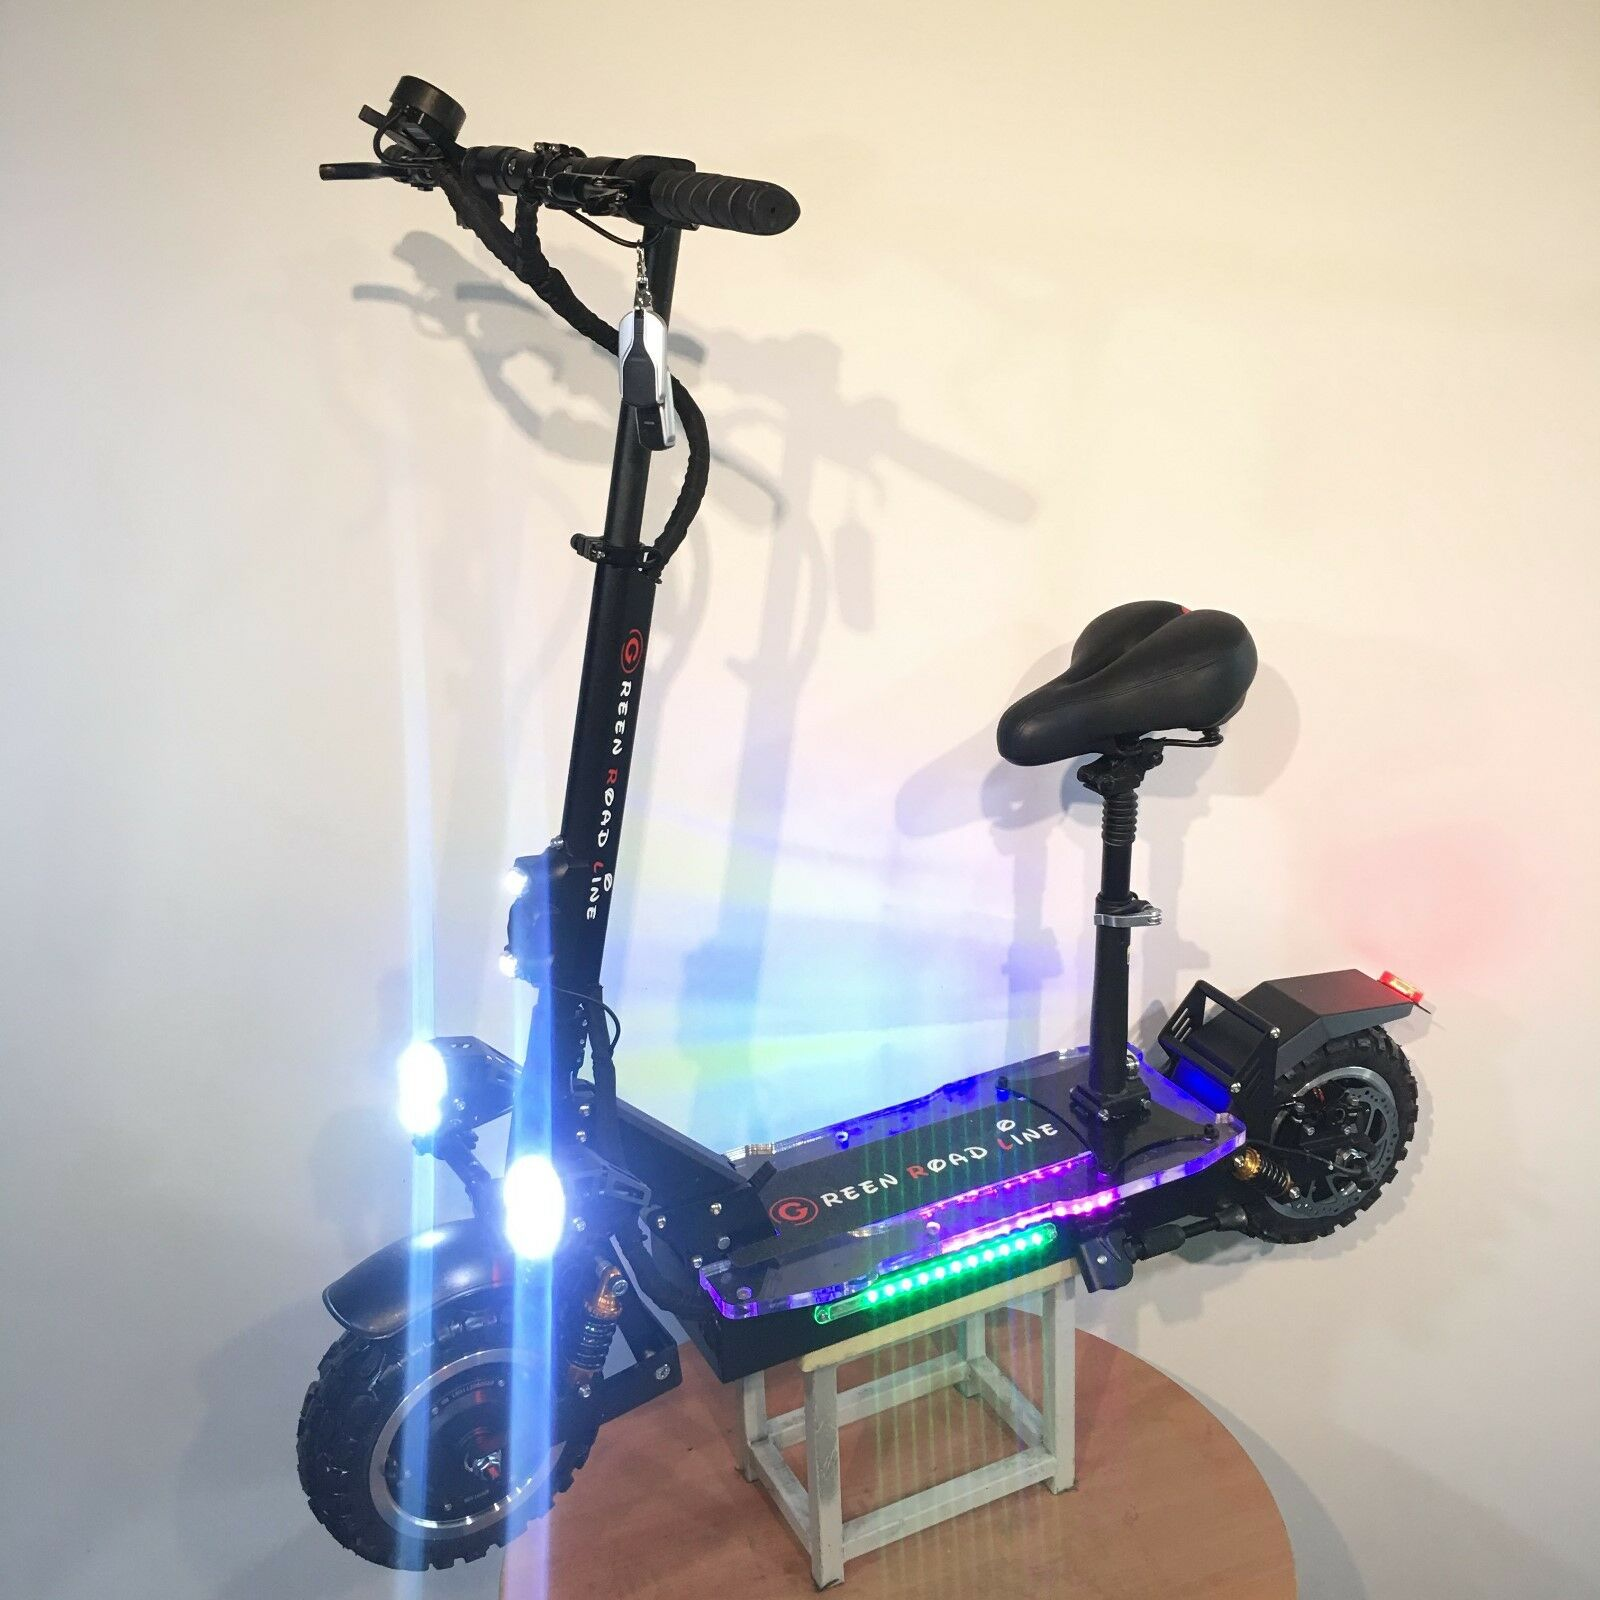 SUN 2000w 48v Two Wheel 12in. Folding Off Road Electric Scooter FAST 25-30MPH